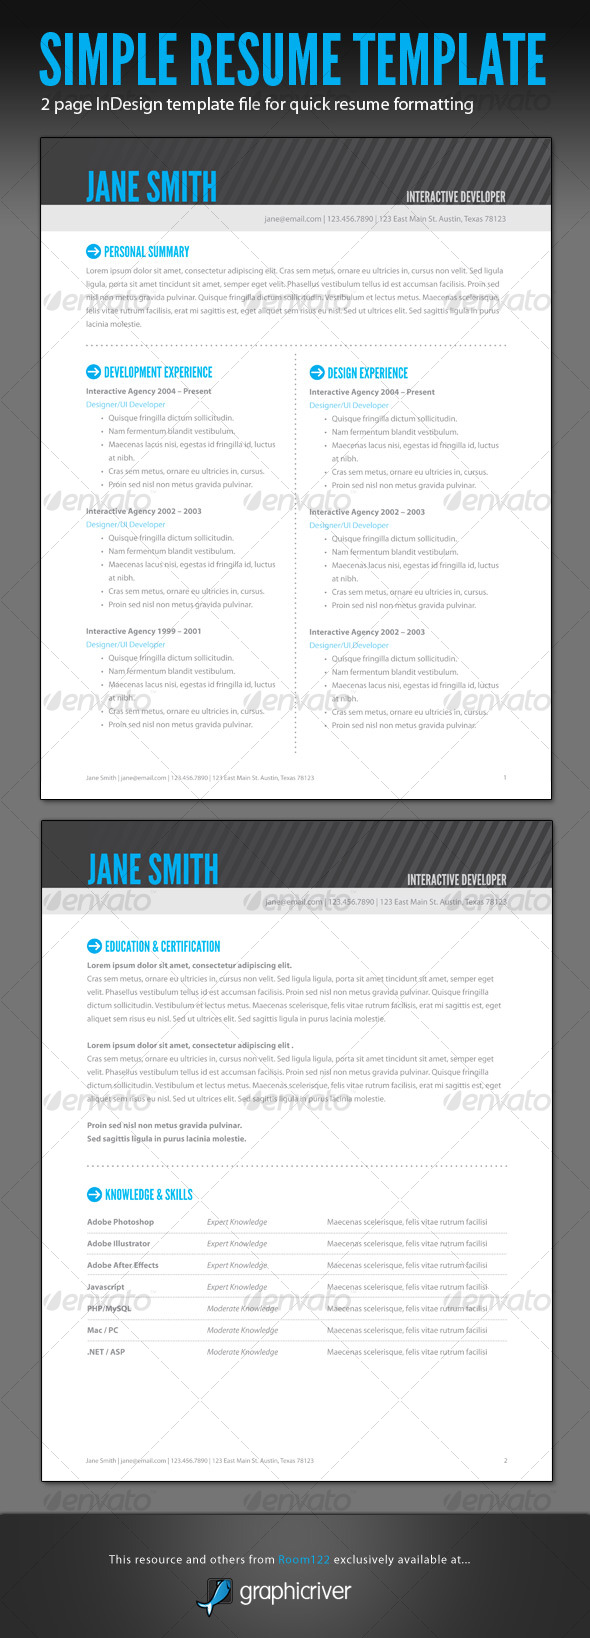 simple resume indesign template resumes stationery - Resume Indesign Template